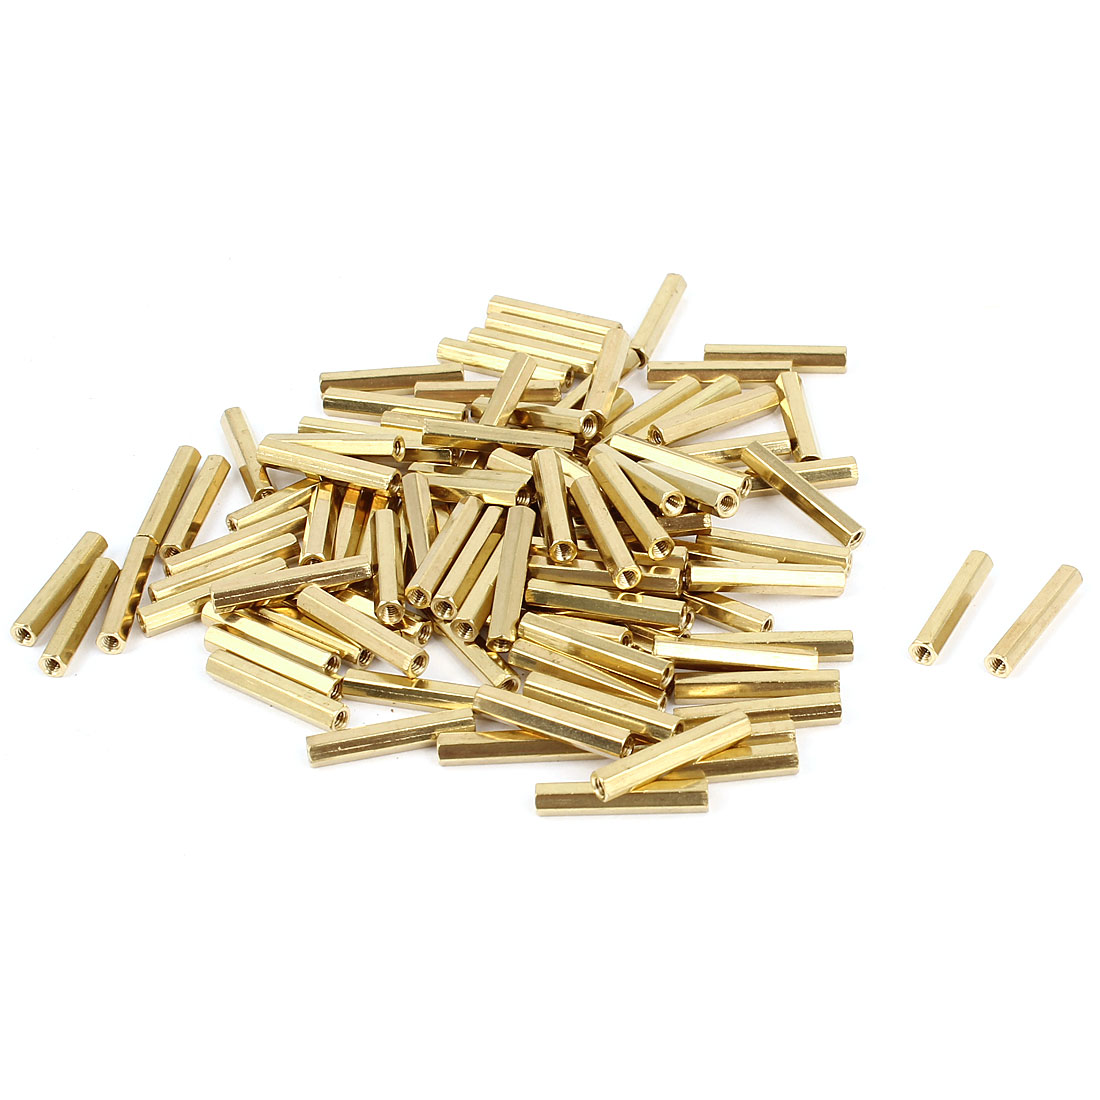 100 Pcs M2 Female Thread Brass Pillar Standoff Hexagonal Spacer 17mm Length